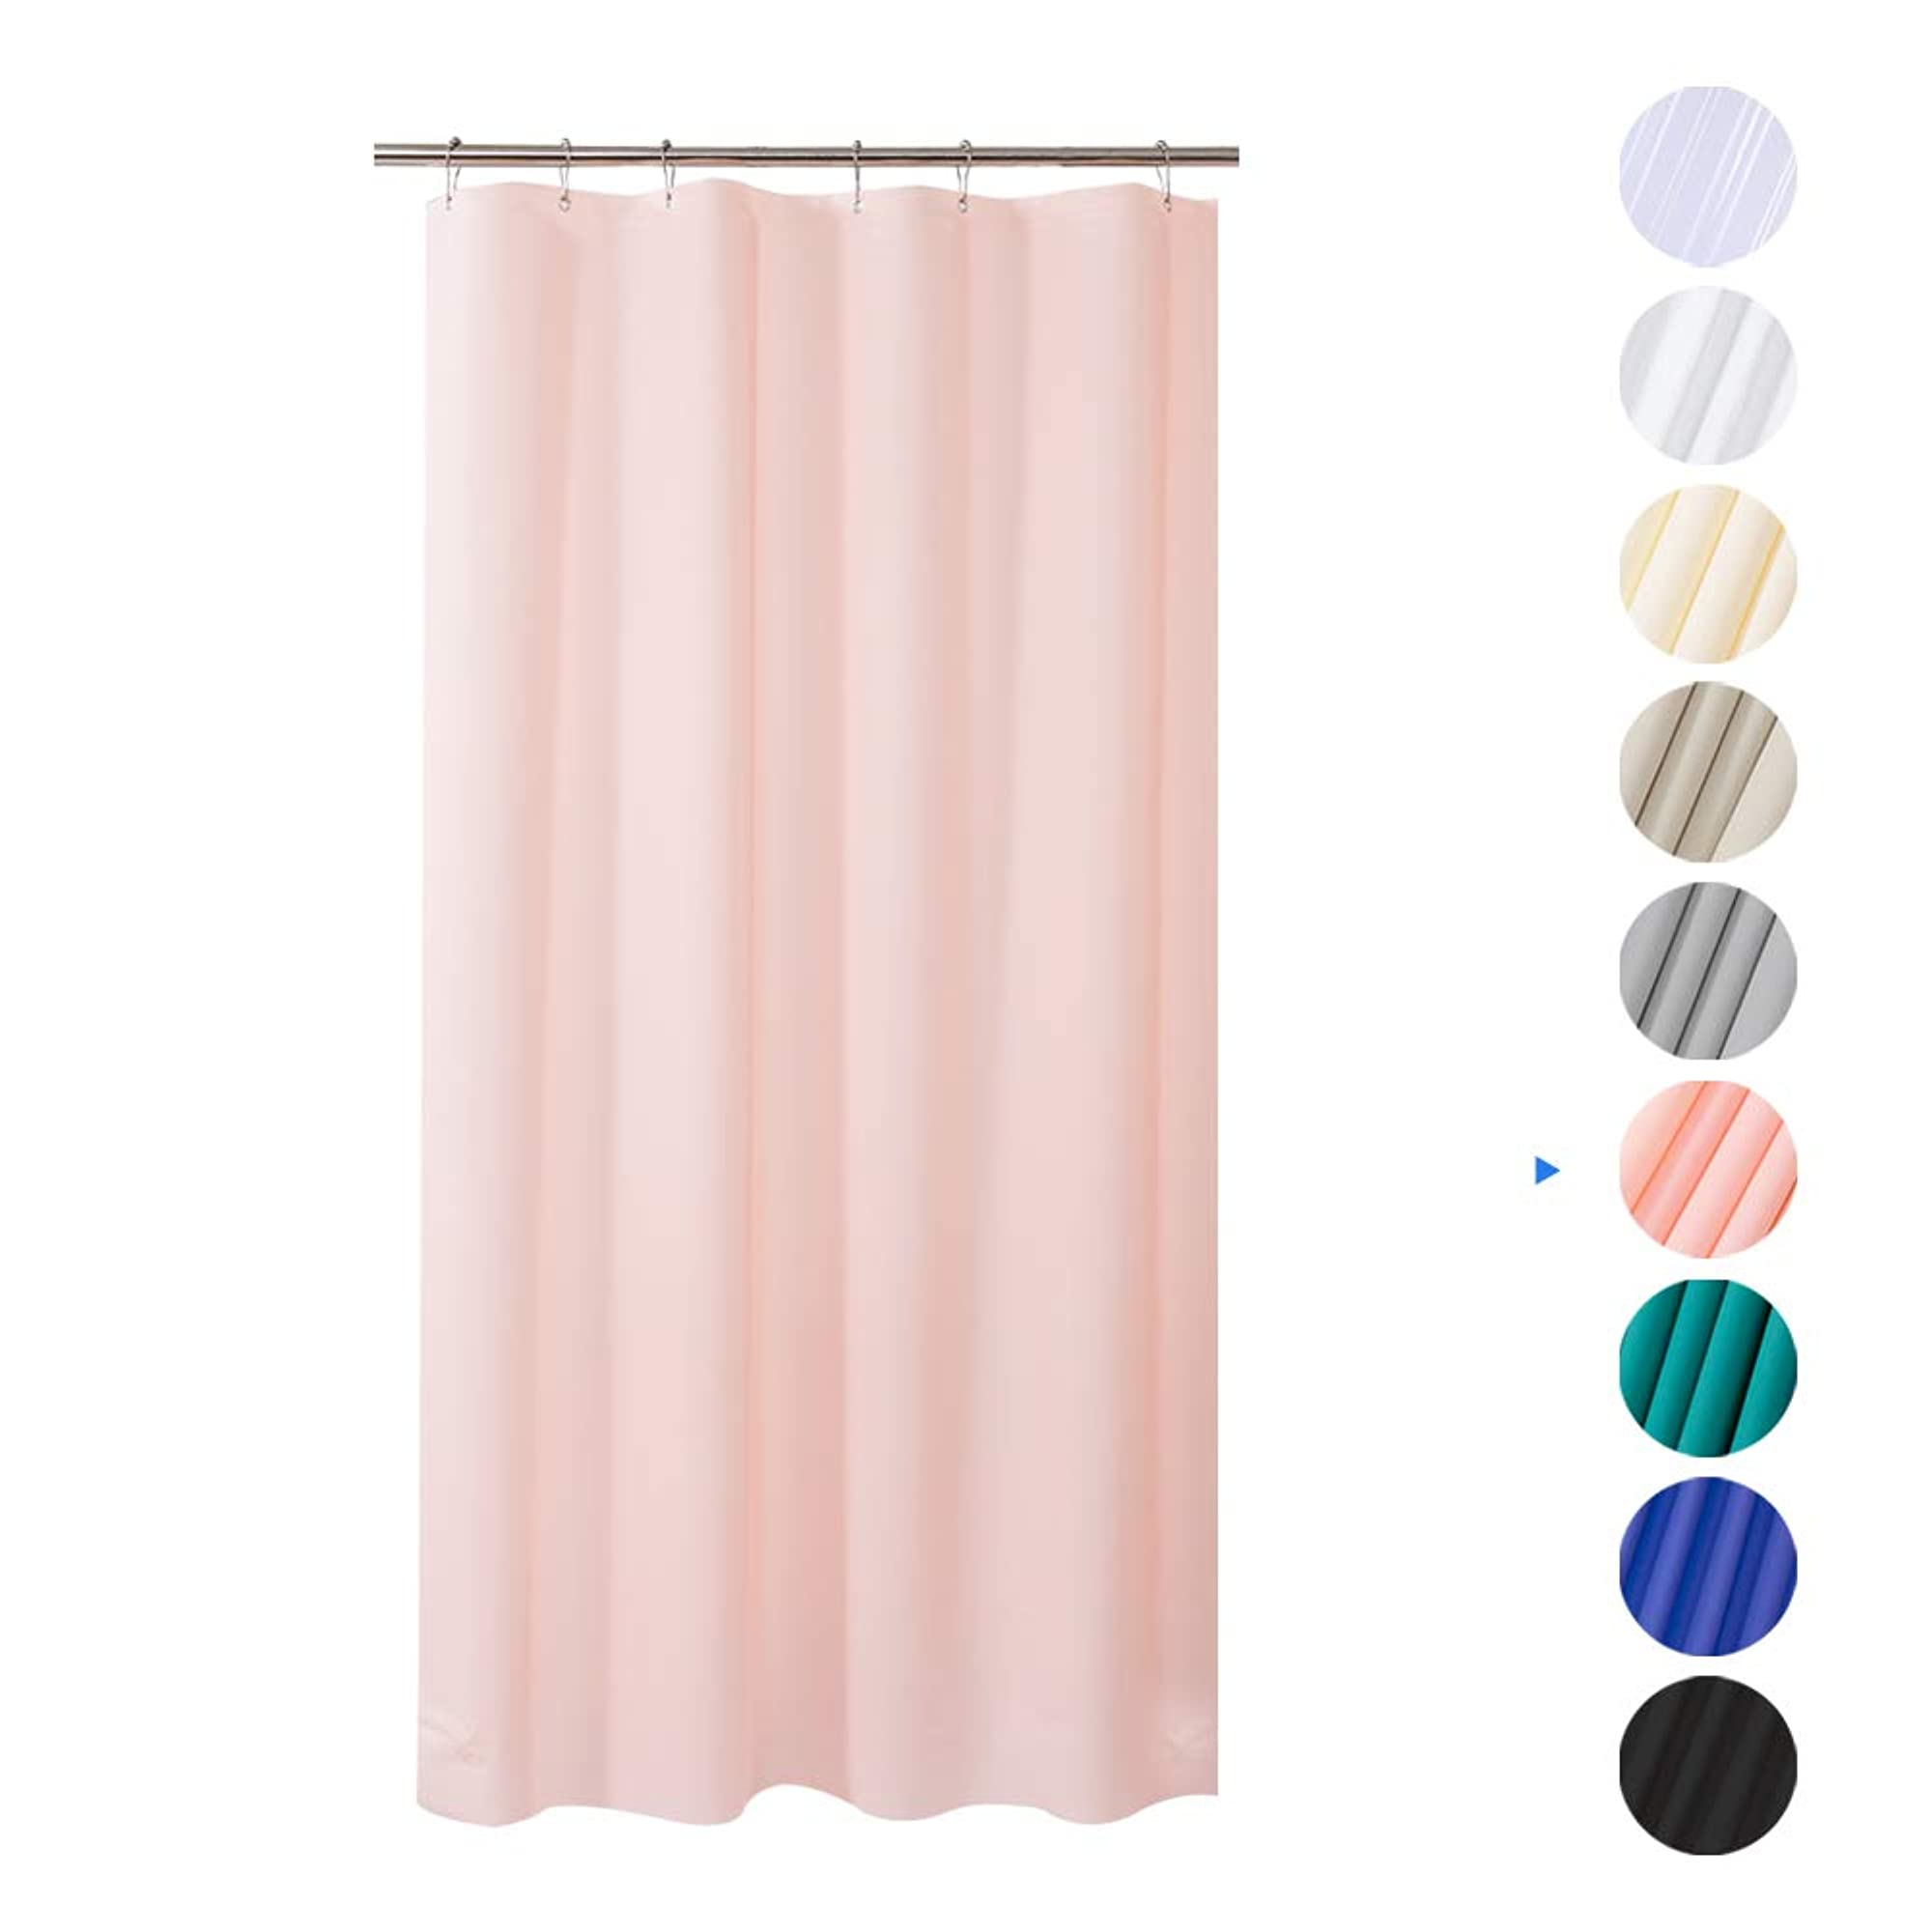 Eva 8G Waterproof Plastic Shower Curtains With Grommet Holes